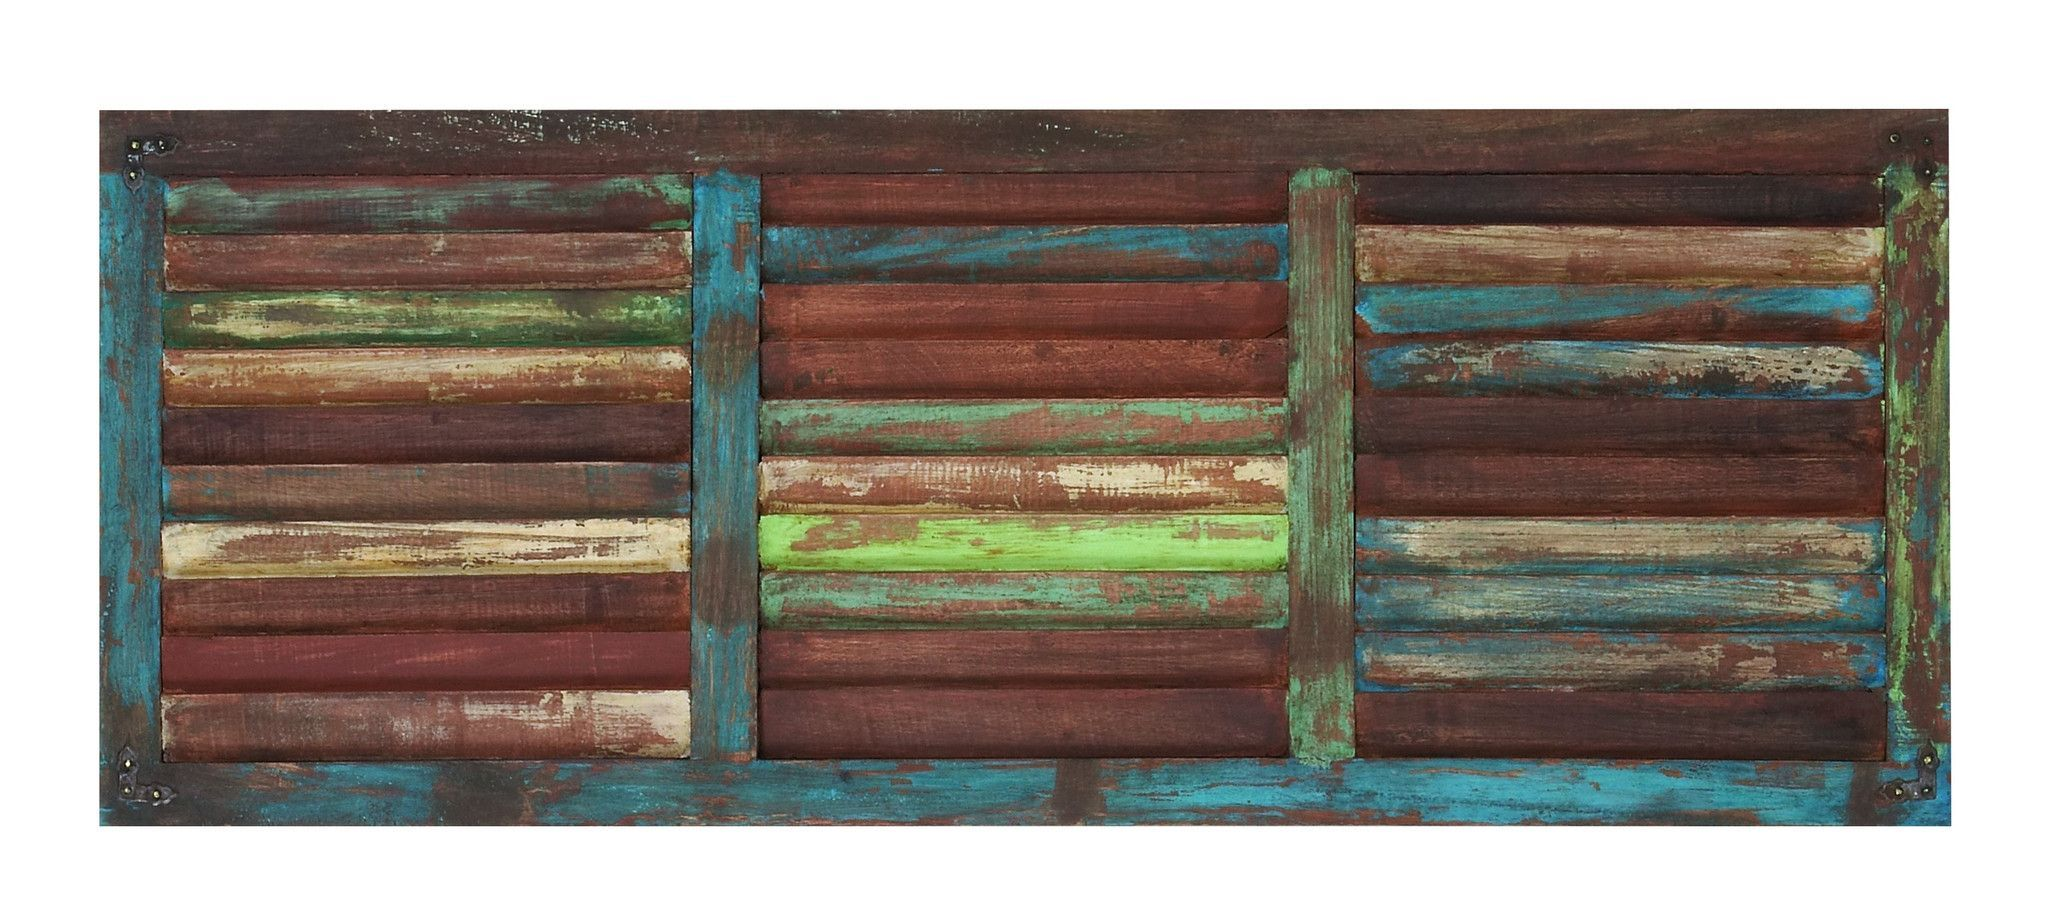 Functional and Attractive Wooden Wall Panel in Rectangular Shape